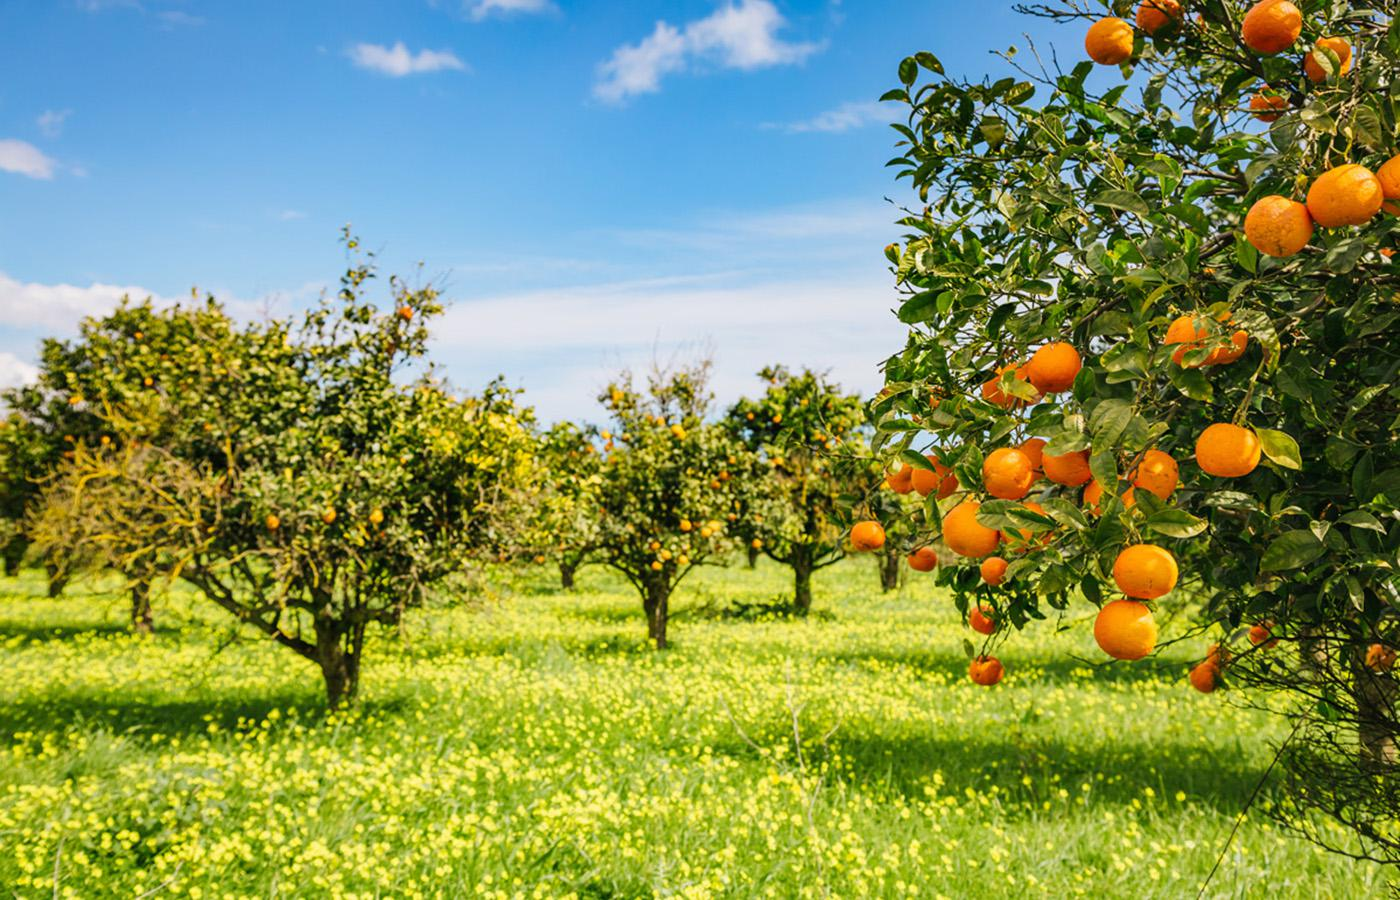 The Washington Navel Orange tree that helped start the California citrus industry is still standing and producing fruit.